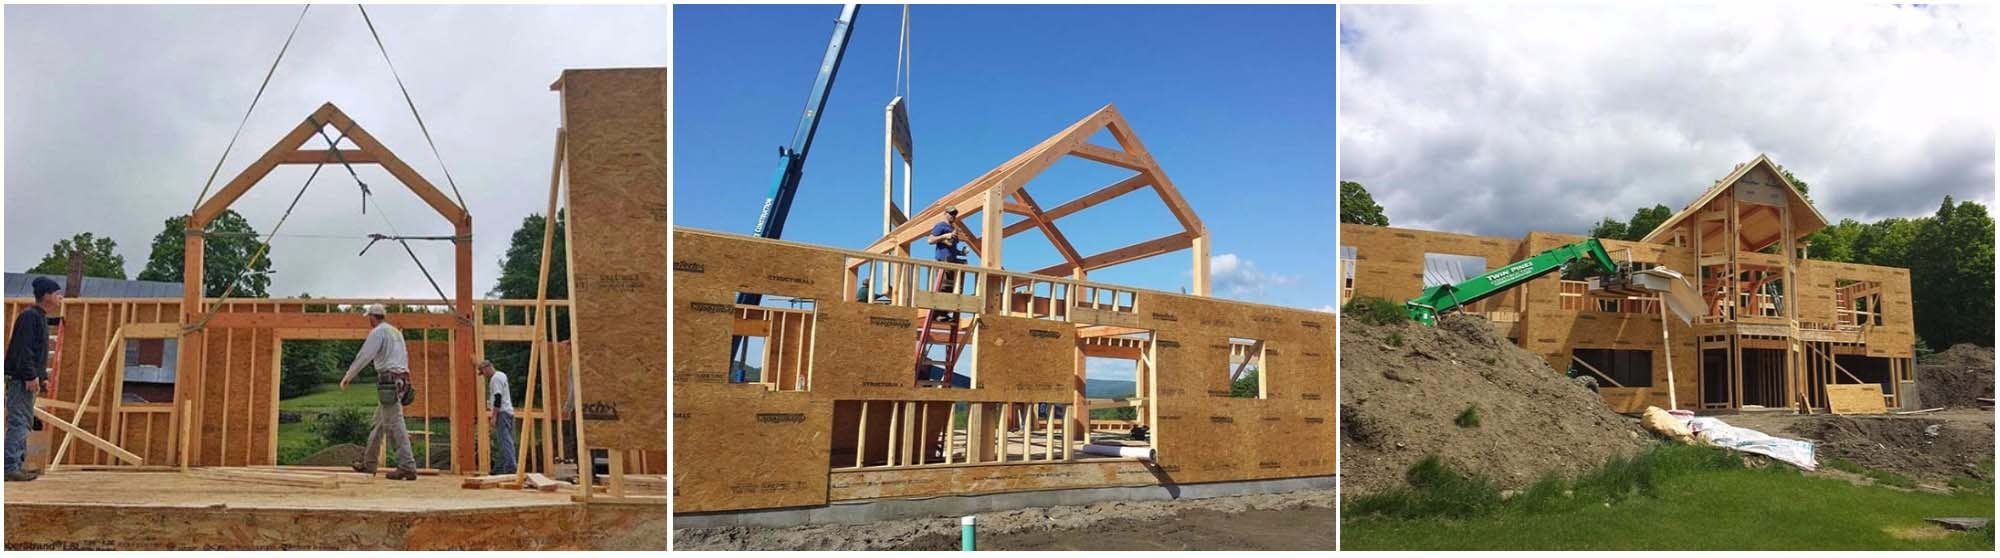 A Touch of Timber Frame - Hybrid Timber Frame Construction